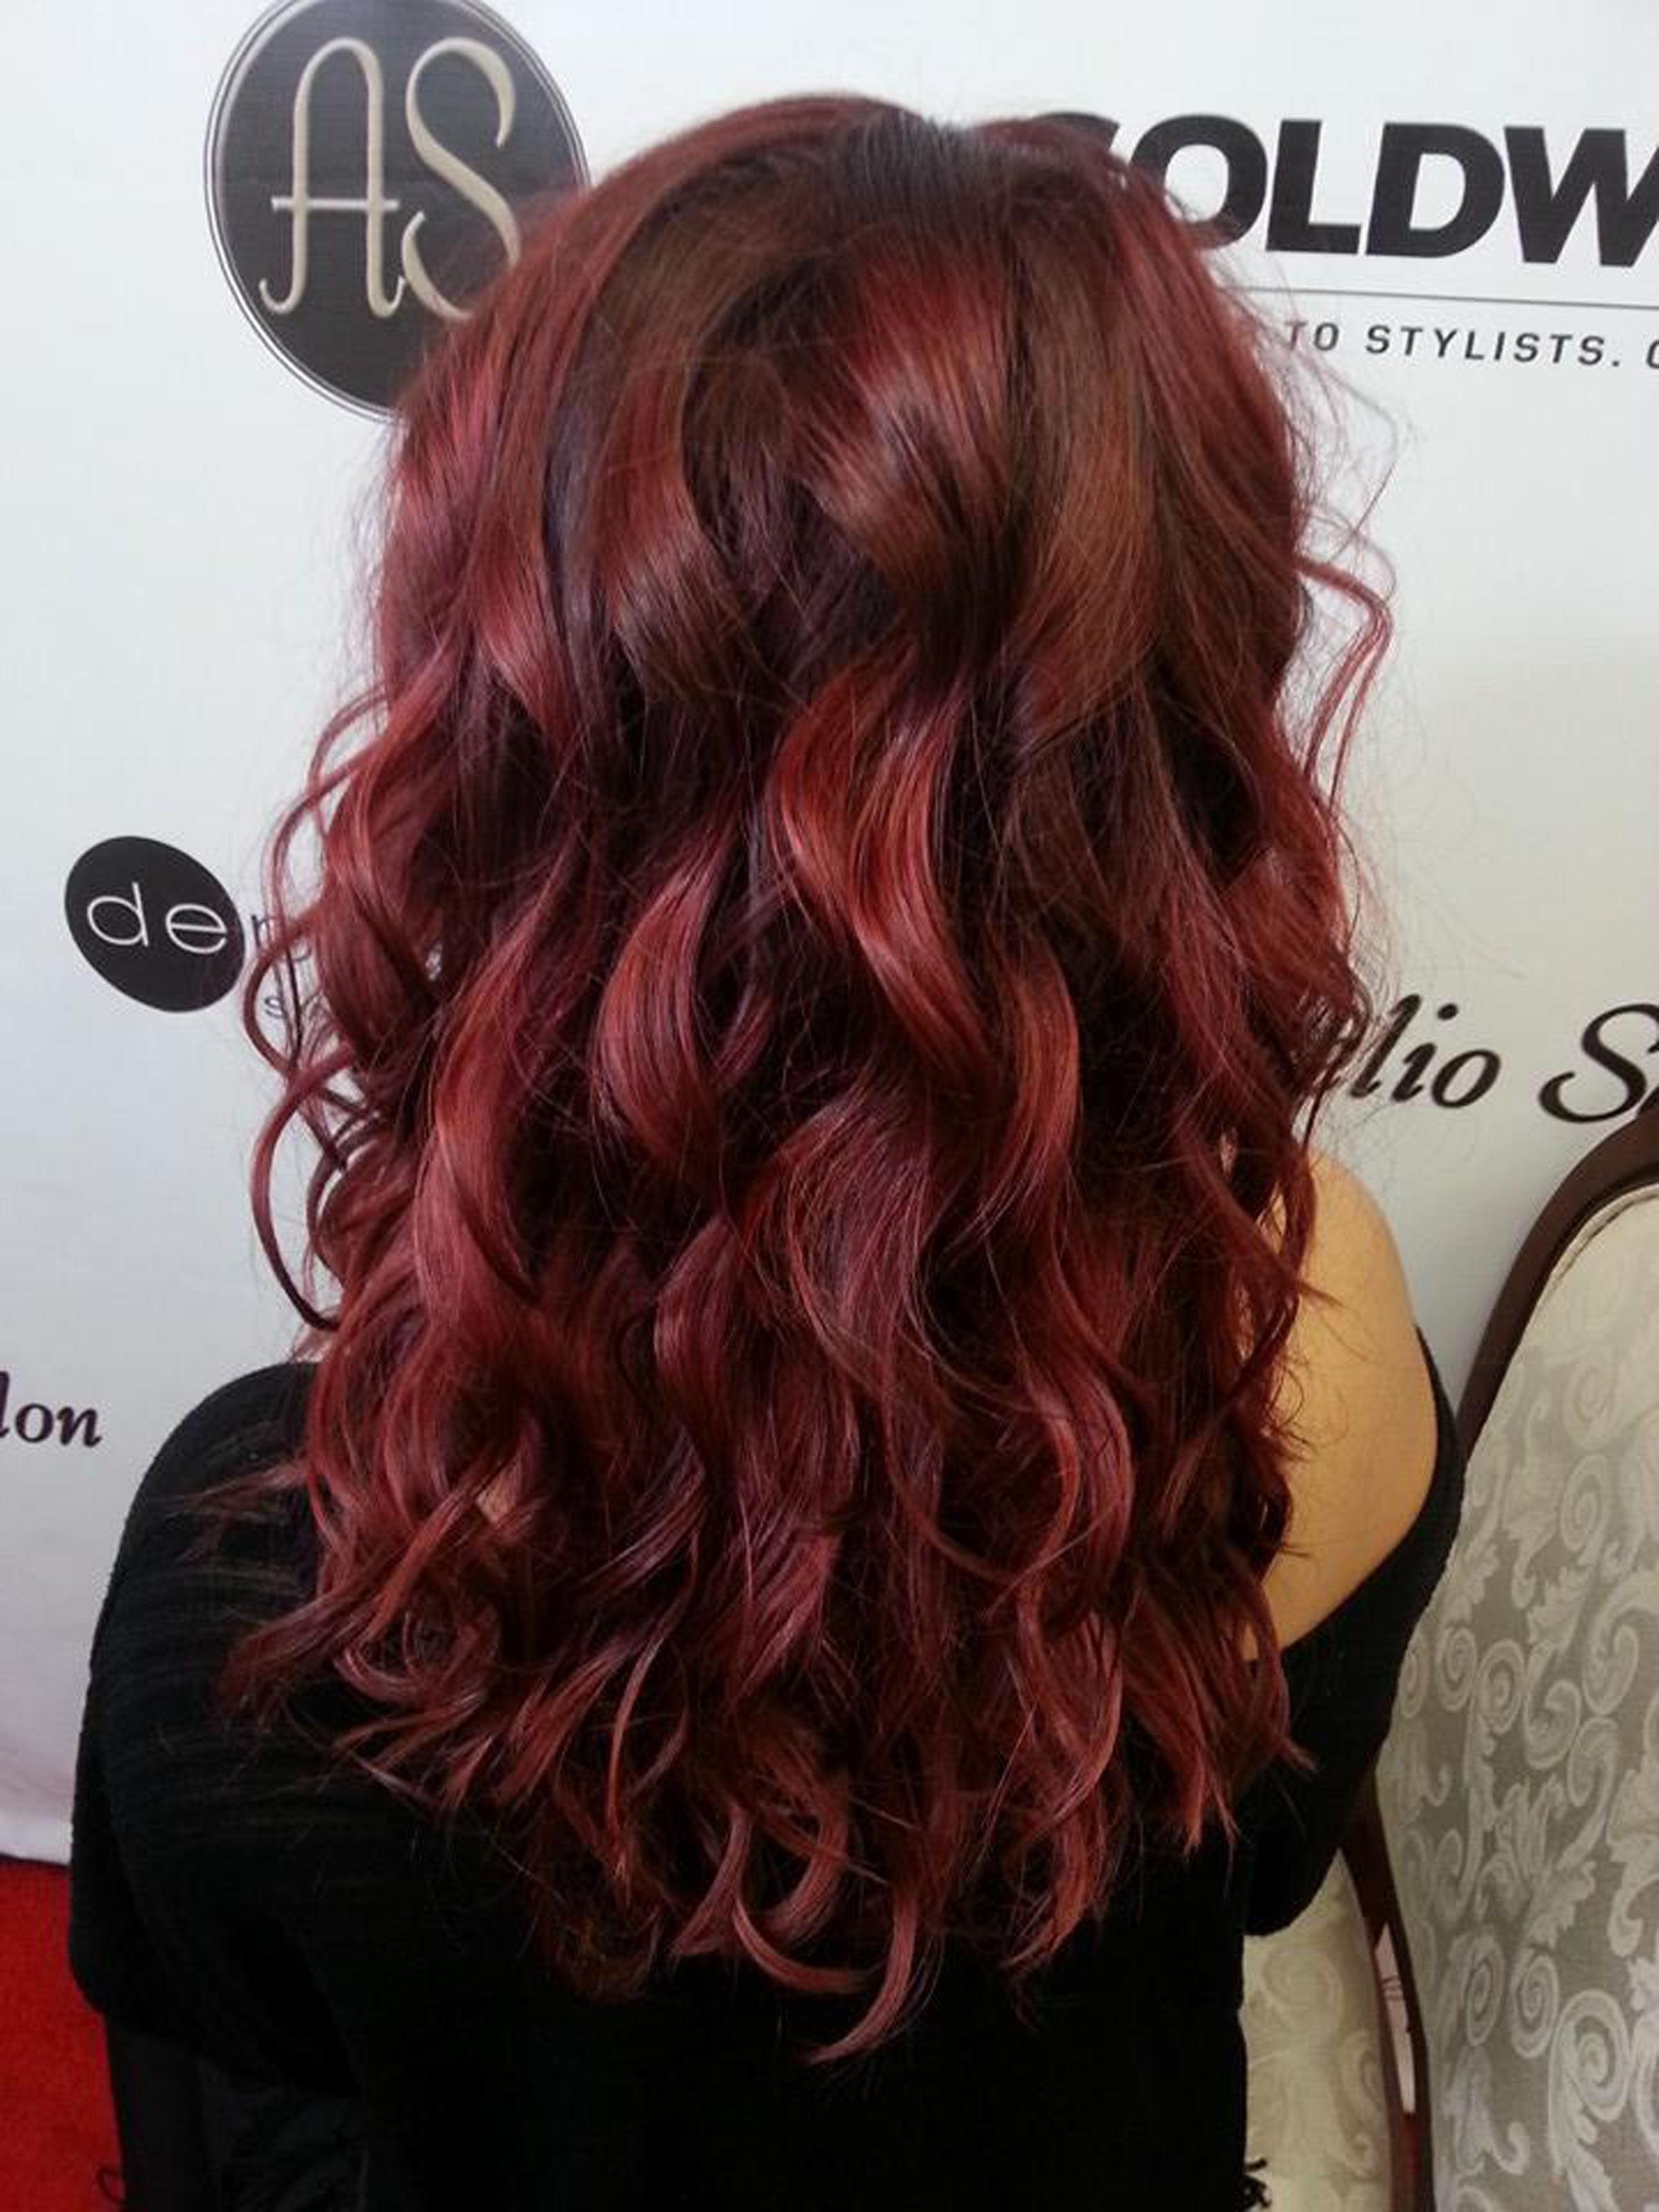 5 Tips to Share: How to Keep Haircolor Vibrant Between Appointments